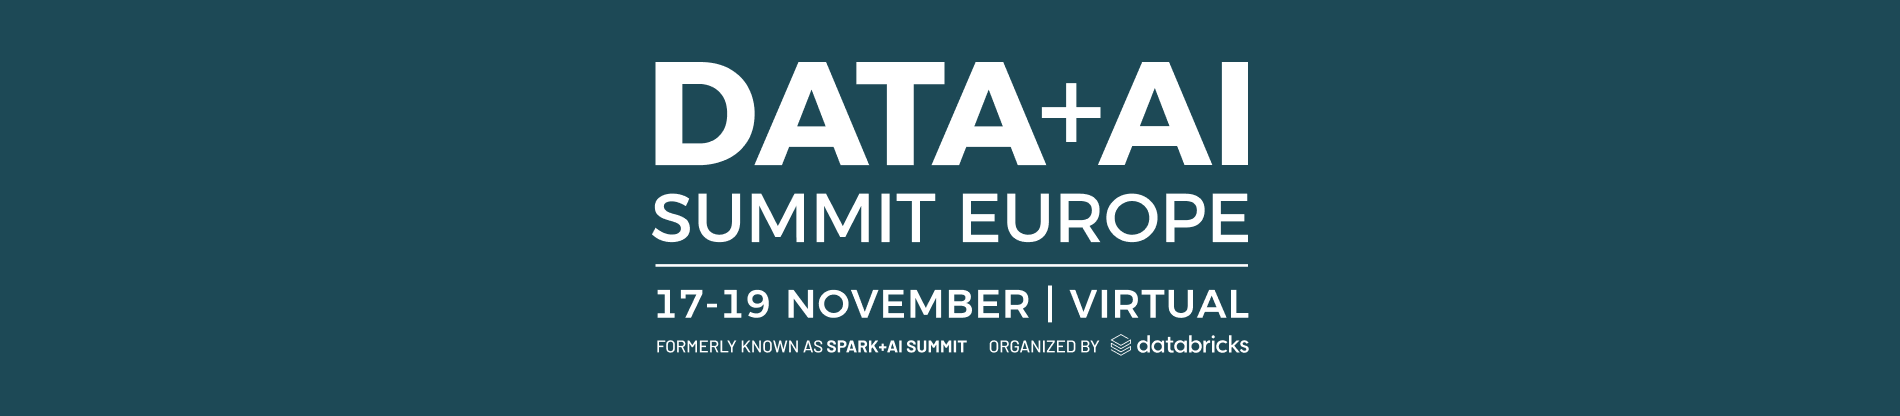 Data + AI Summit Europe 2020